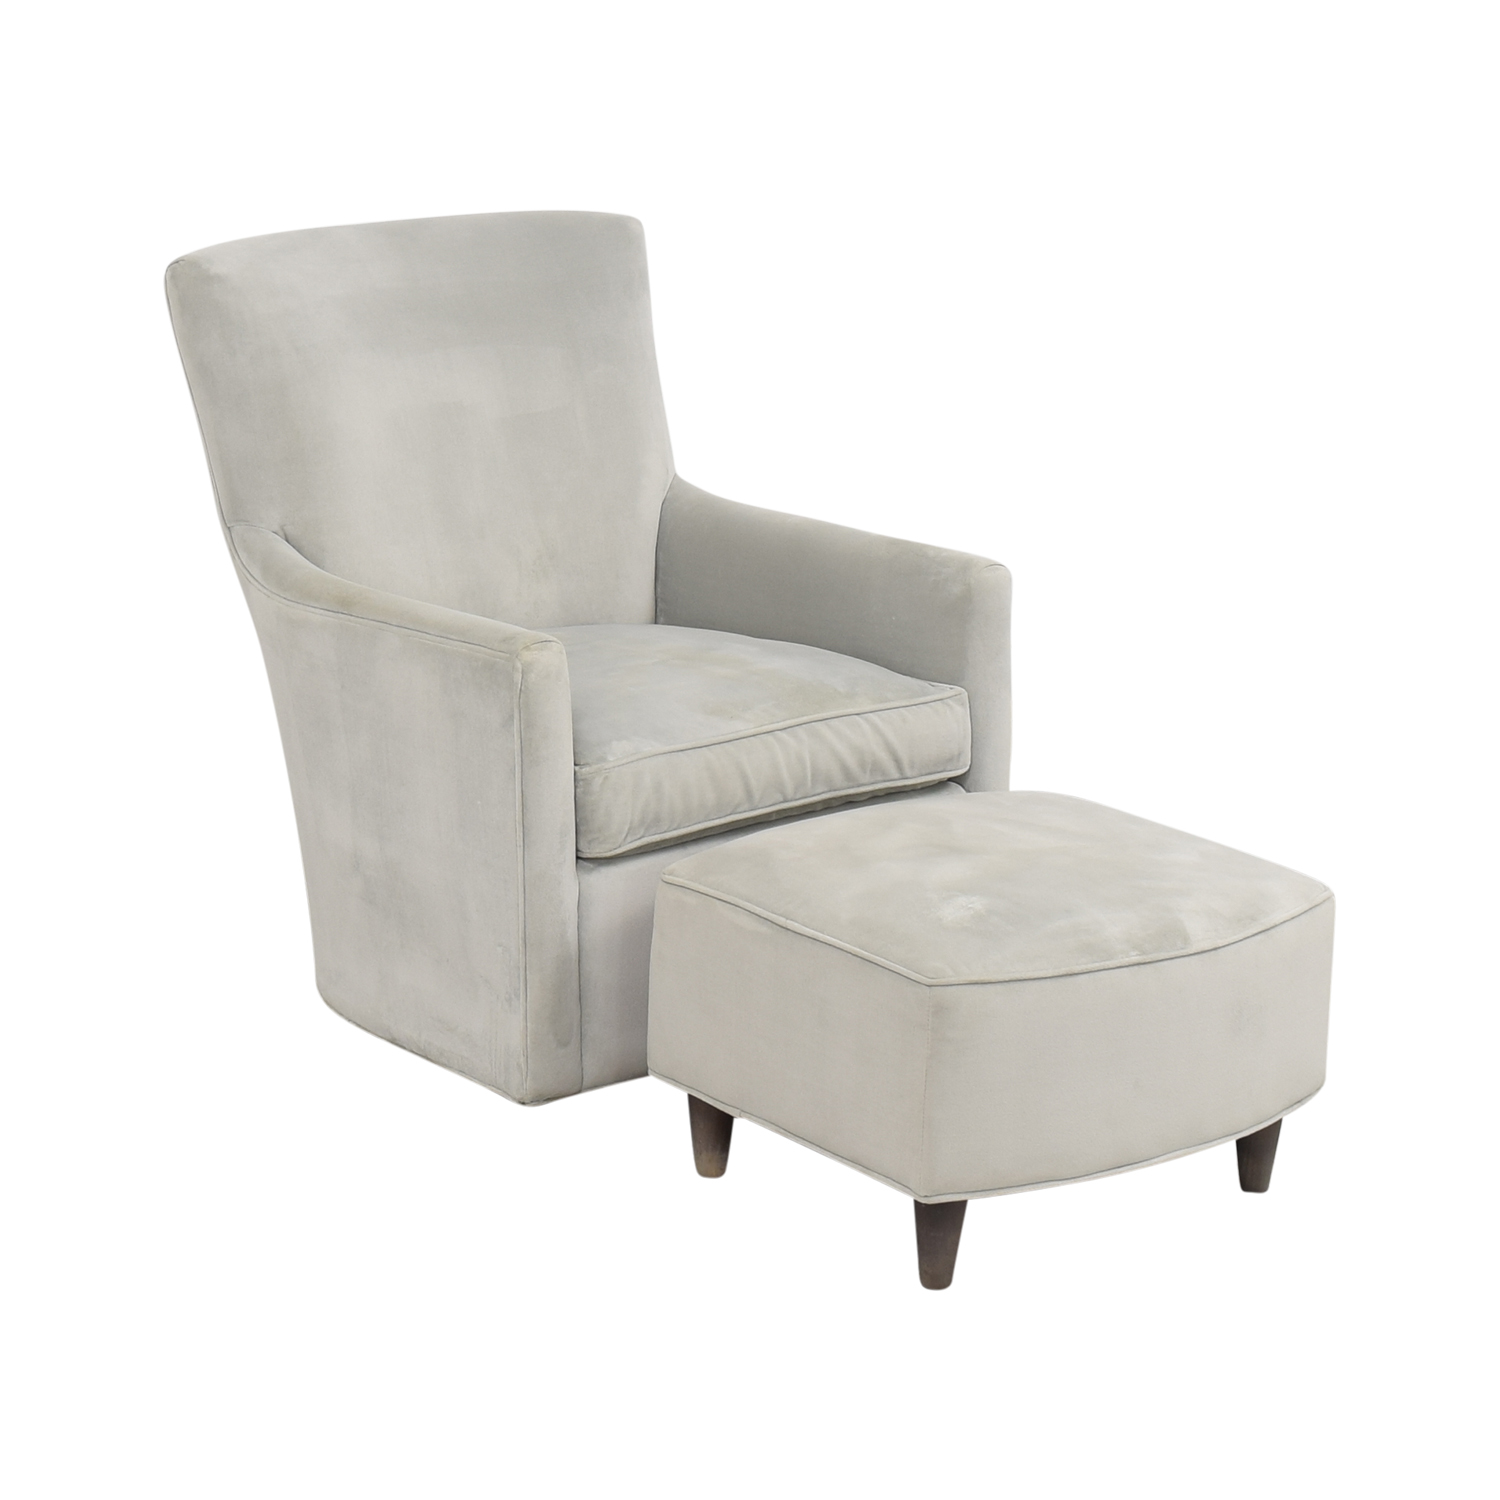 buy Land of Nod Glider and Ottoman Land of Nod Accent Chairs